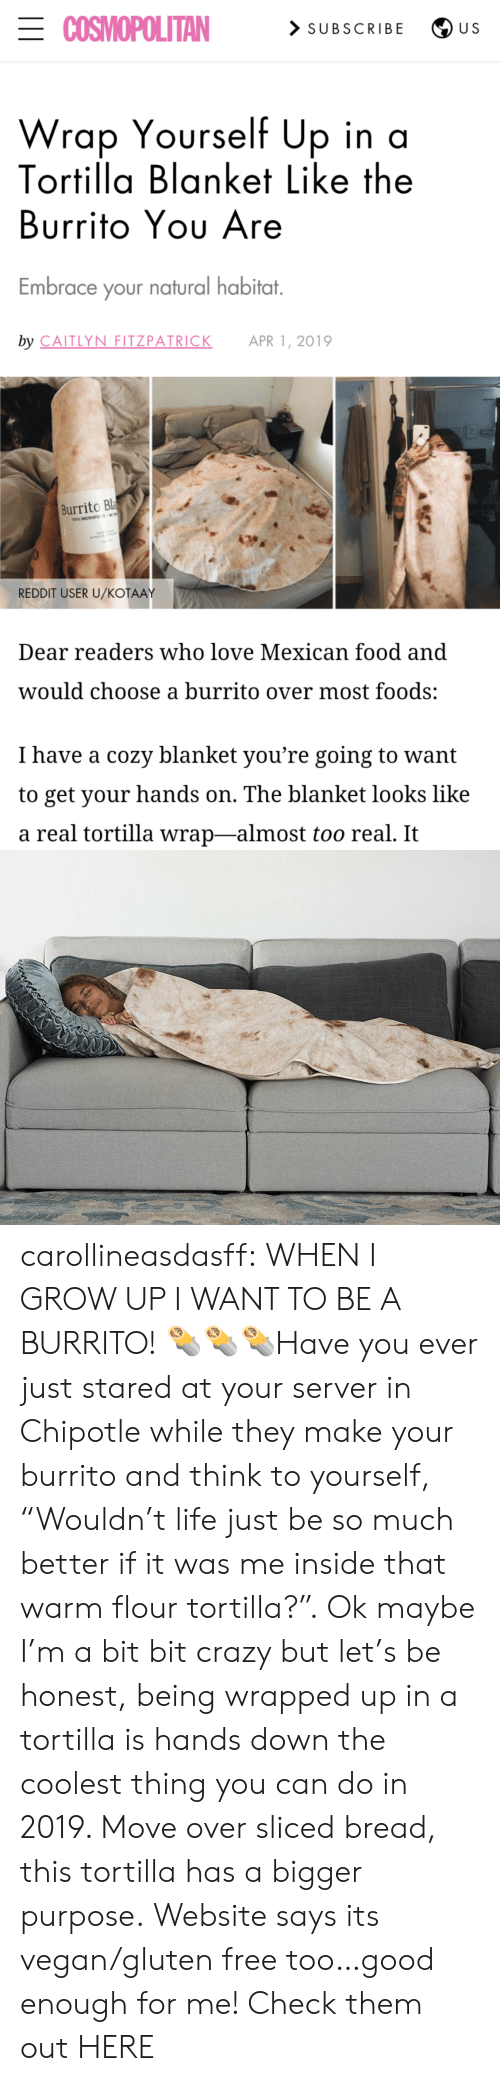 "Gluten: ECOSMOPOLITAN  > SUBSCRIBE  U S  Wrap Yourself Up in a  Tortilla Blanket Like the  Burrito Yου Are  Embrace your natural habitat.  by CAITLYN FITZPATRICK  APR 1, 2019  Burrito Bla  100% MICROFE  REDDIT USER U/KOŤAAY  Dear readers who love Mexican food and  would choose a burrito over most foods:  I have a cozy blanket you're going to want  to get your hands on. The blanket looks like  a real tortilla wrap-almost too real. It carollineasdasff: WHEN I GROW UP I WANT TO BE A BURRITO! 🌯🌯🌯Have you ever just stared at your server in Chipotle while they make your burrito and think to yourself, ""Wouldn't life just be so much better if it was me inside that warm flour tortilla?"". Ok maybe I'm a bit bit crazy but let's be honest, being wrapped up in a tortilla is hands down the coolest thing you can do in 2019. Move over sliced bread, this tortilla has a bigger purpose. Website says its vegan/gluten free too…good enough for me! Check them out HERE"